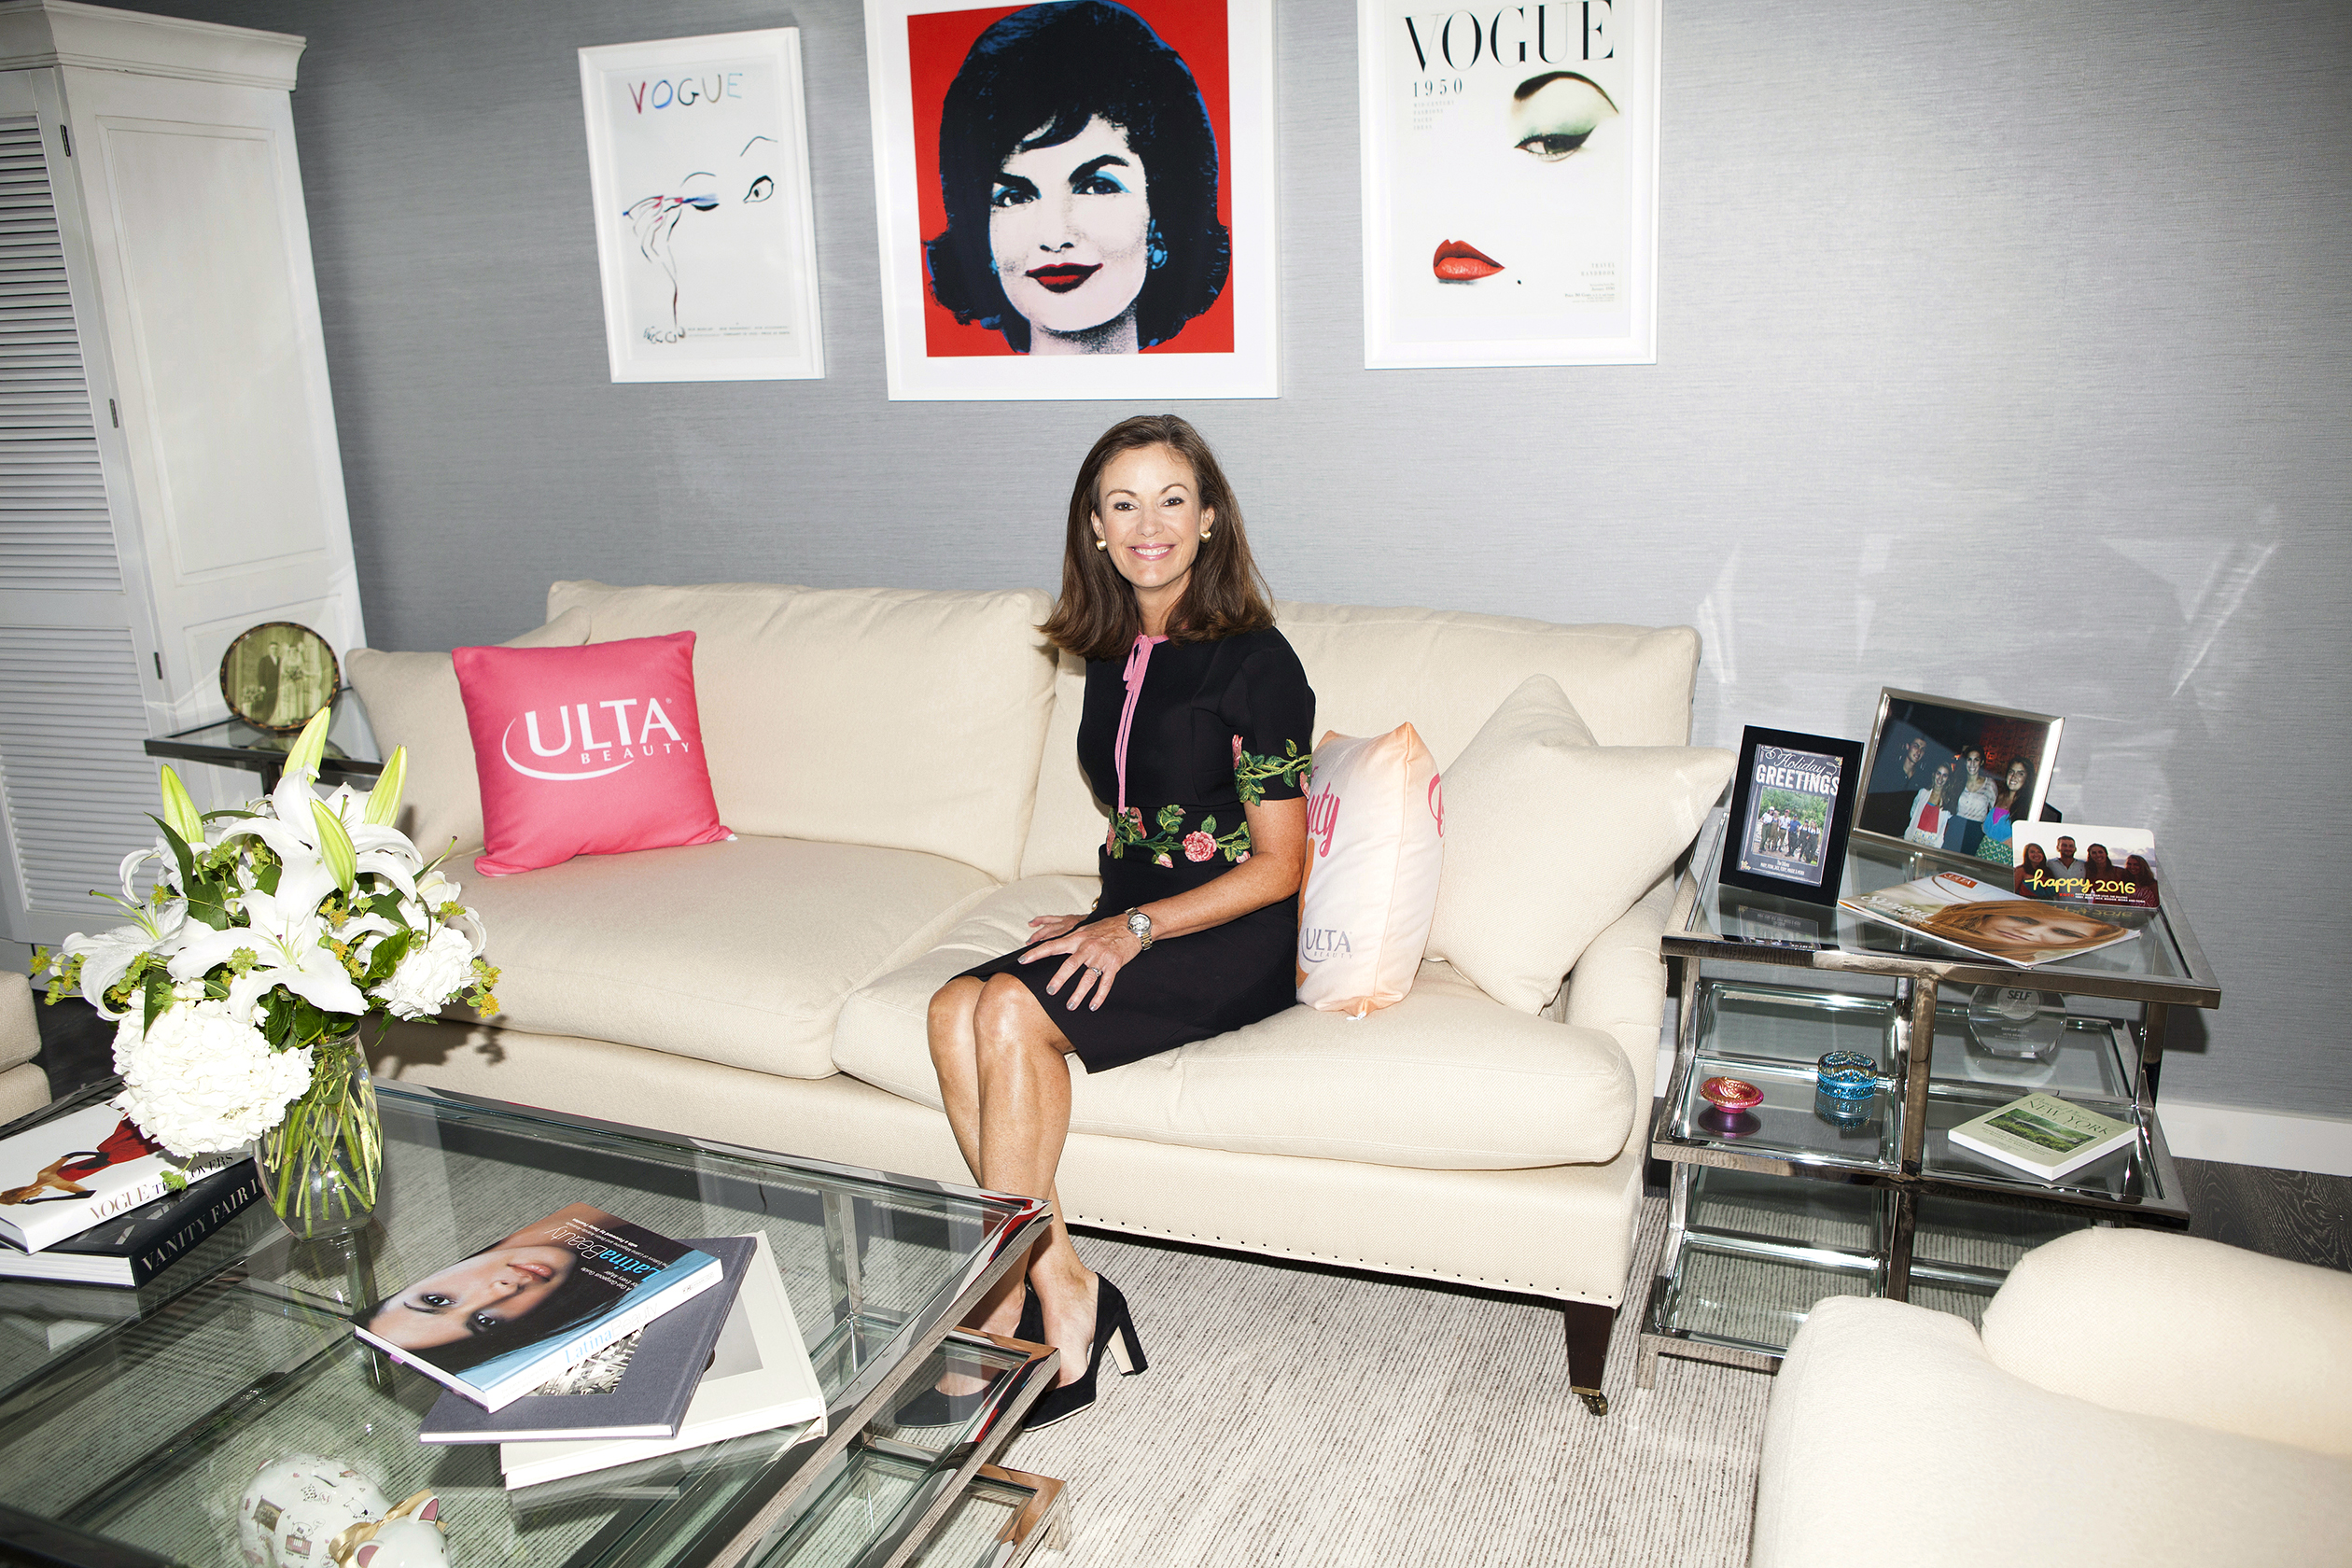 6:09 p.m. Dillon, shown here at Ulta's headquarters in Bolingbrook, Ill., rose in the marketing world by getting inside her customers' heads. She once ran a marathon just so she could better understand Gatorade drinkers' needs.